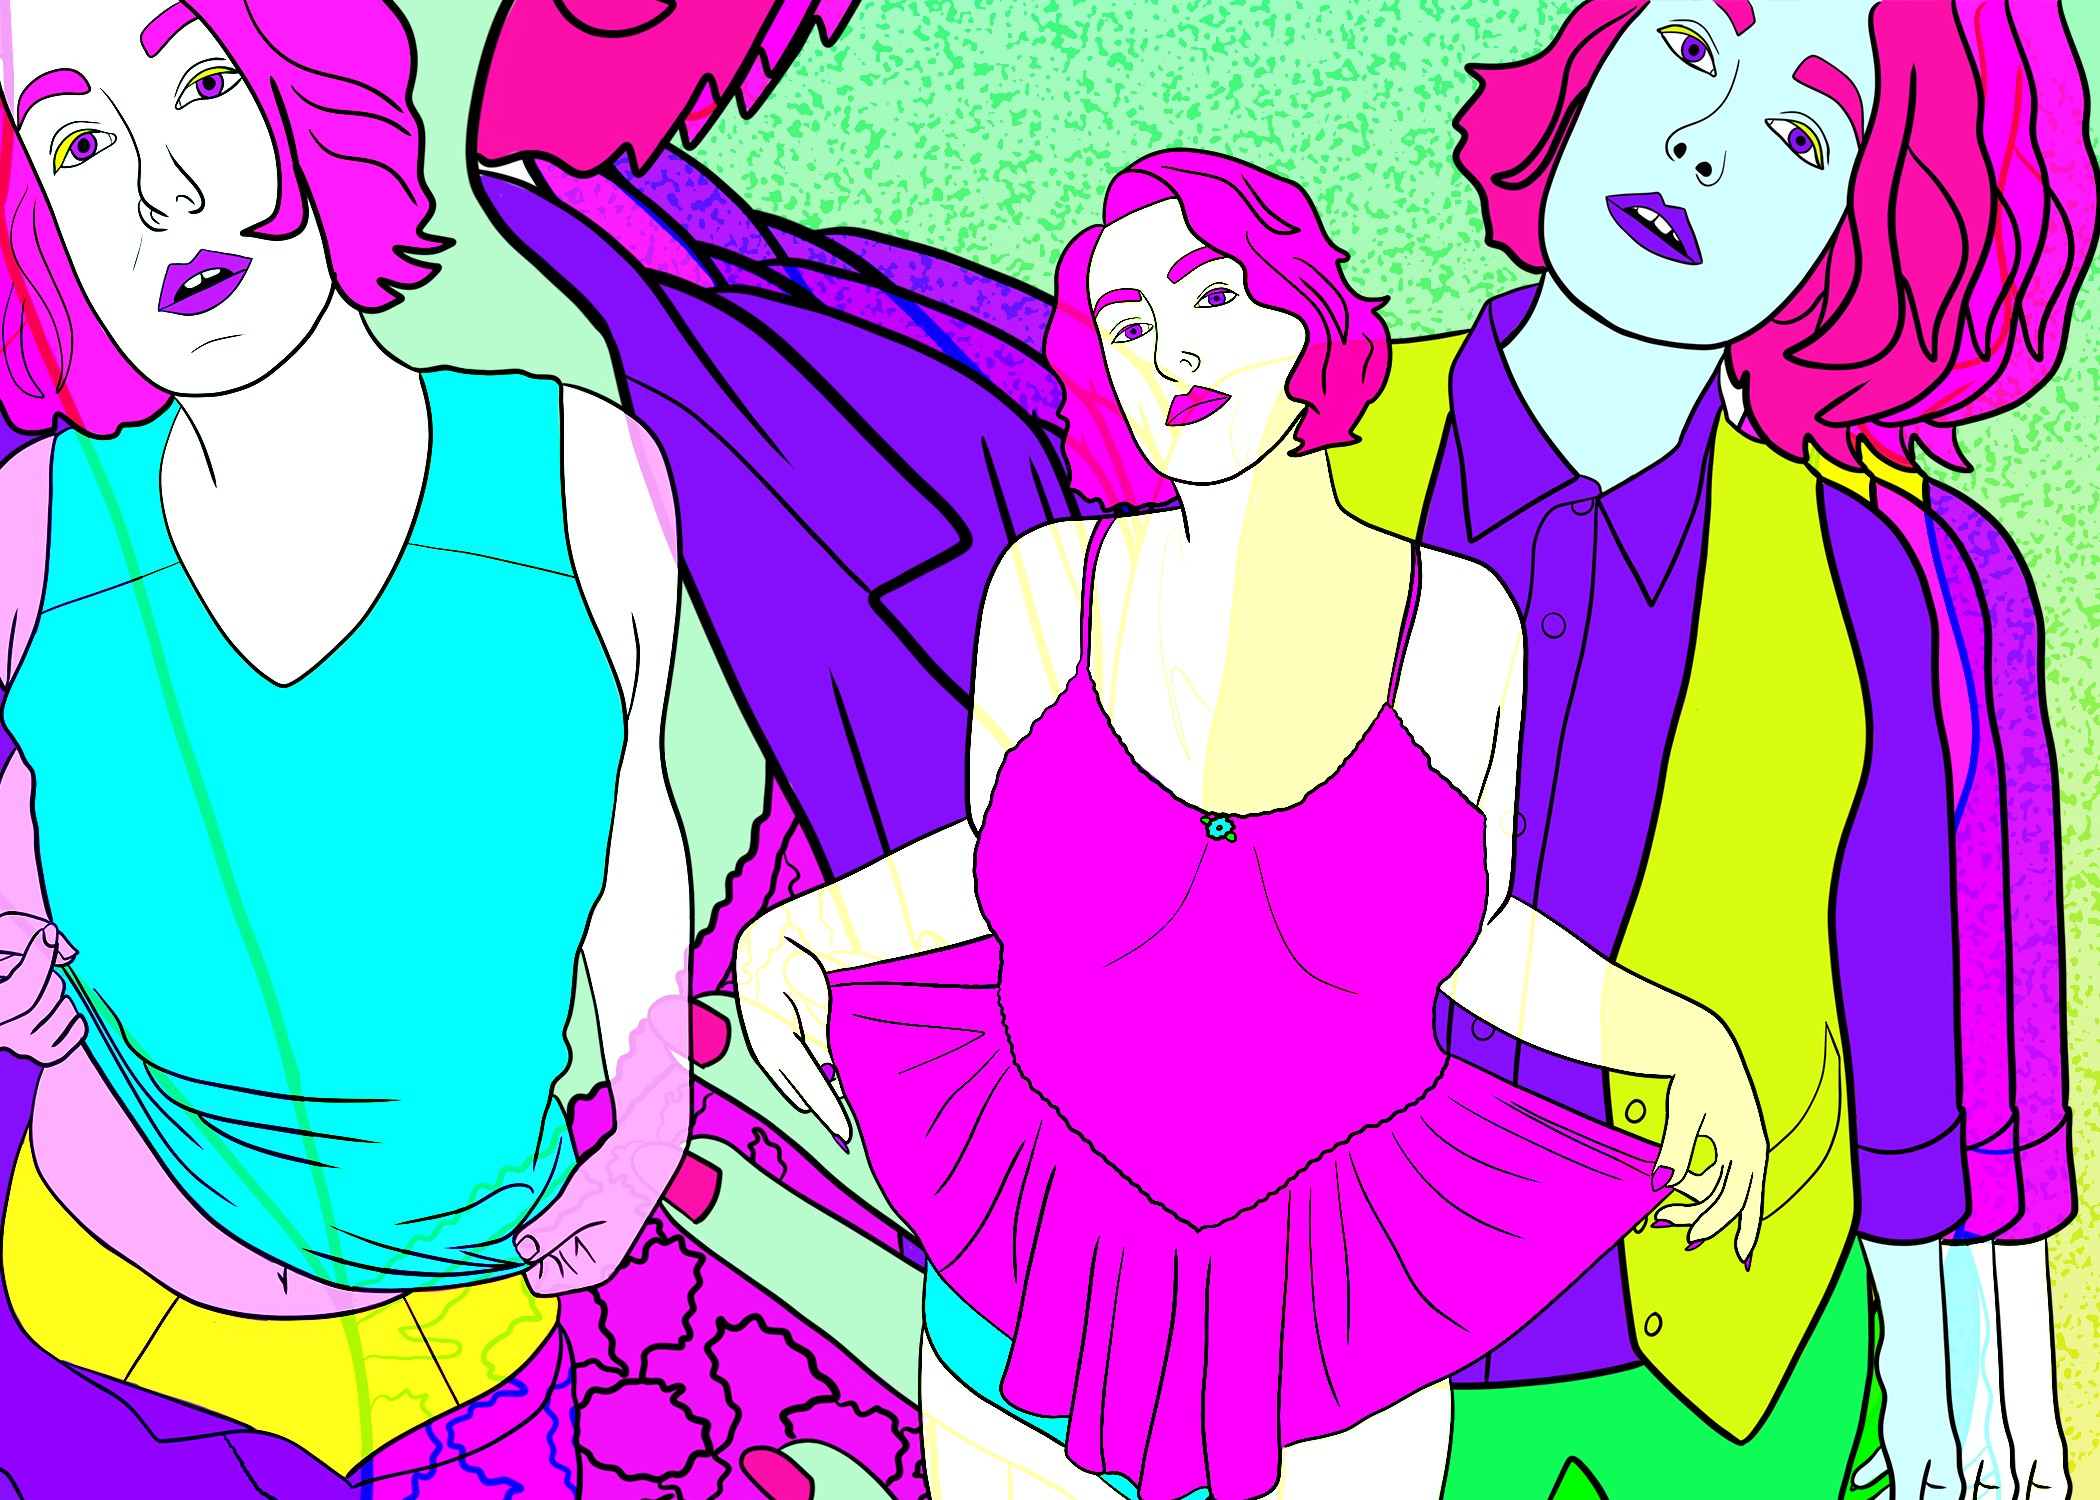 Digital collage in bright pink, purple, yellow, and blue of gendered versions of Jess: a binder, a dress, a blazer, a vest.